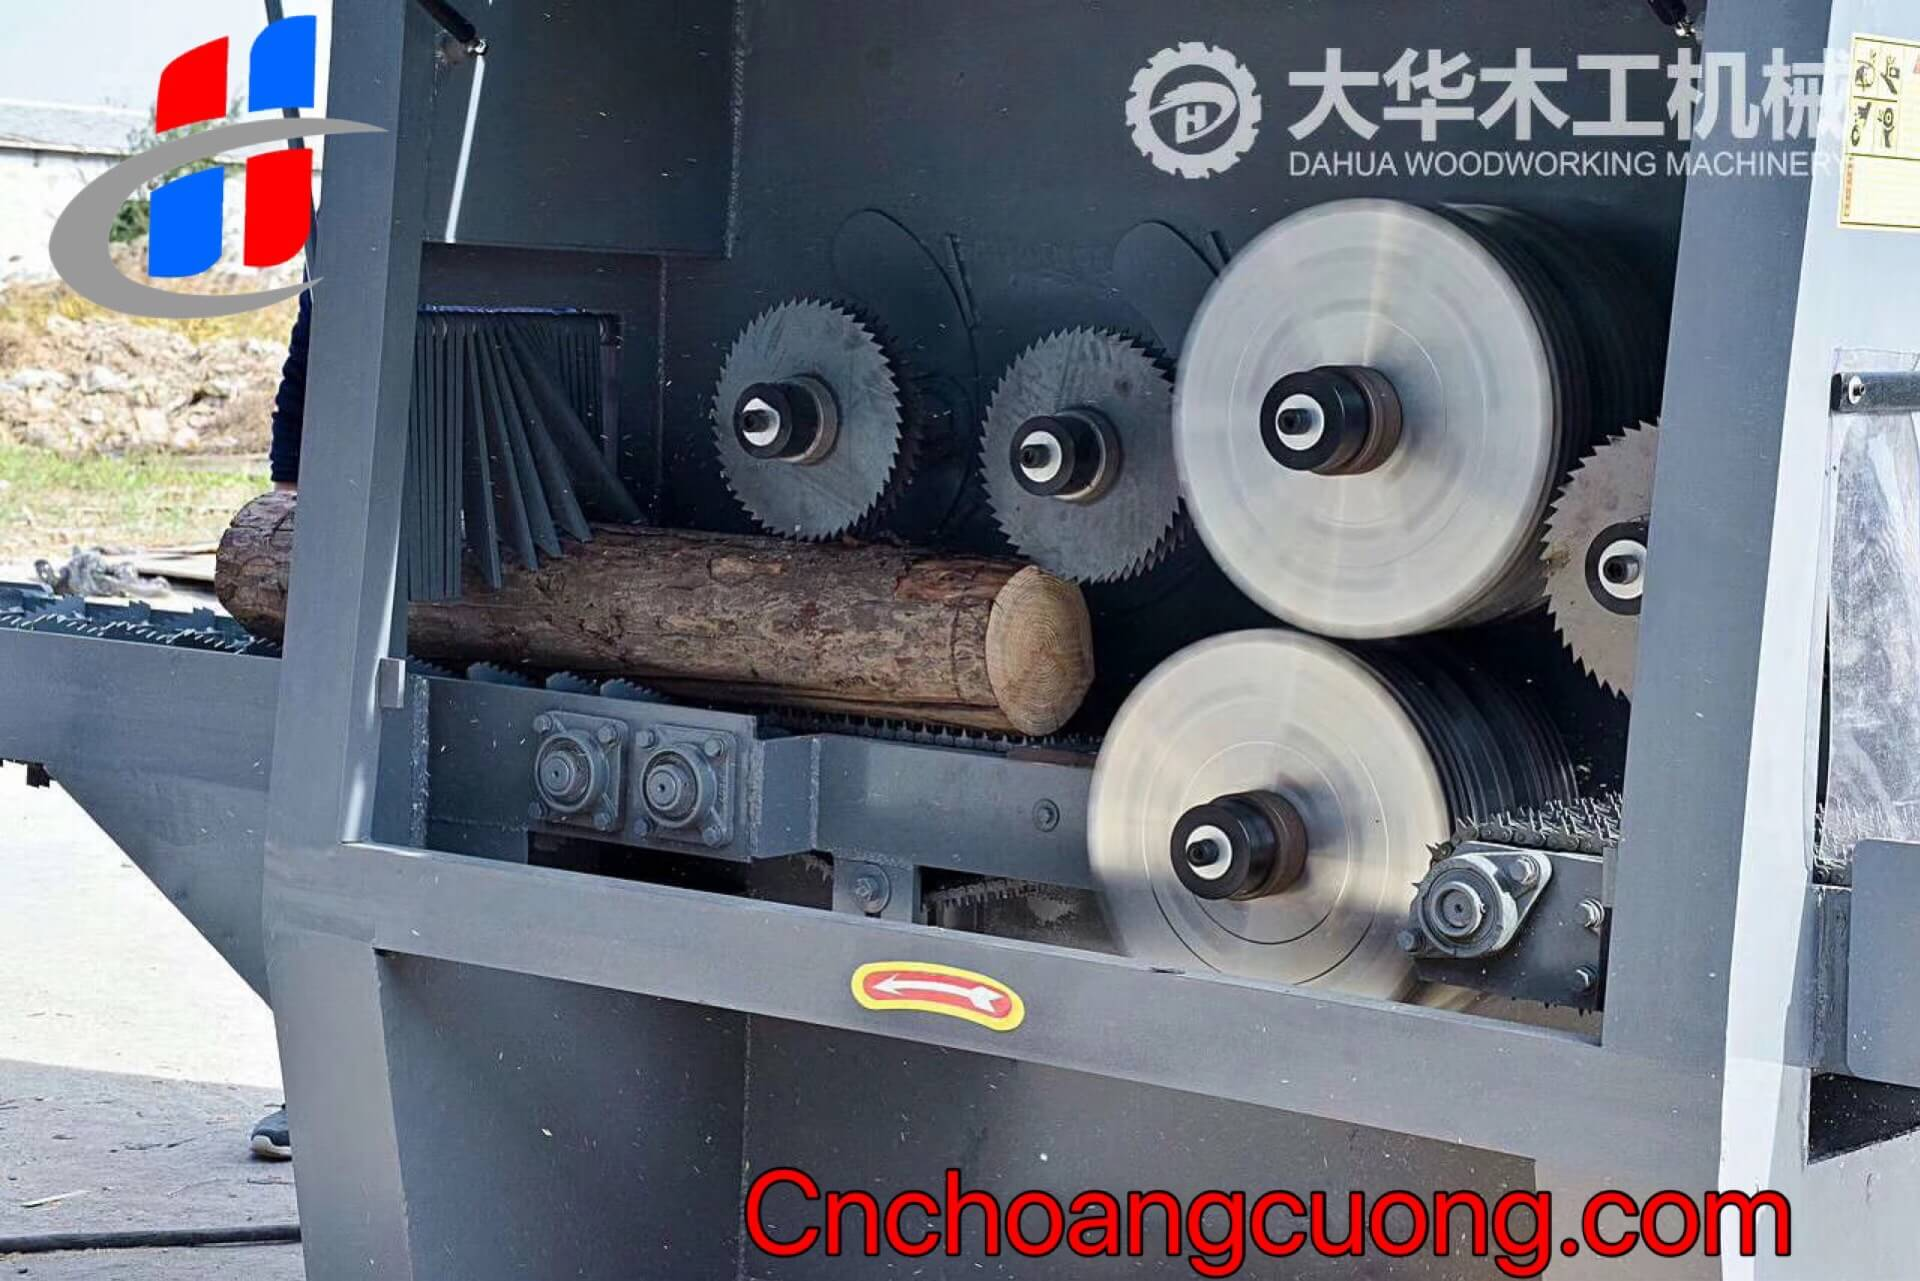 https://cnchoangcuong.com/?post_type=product&p=1630&preview=true